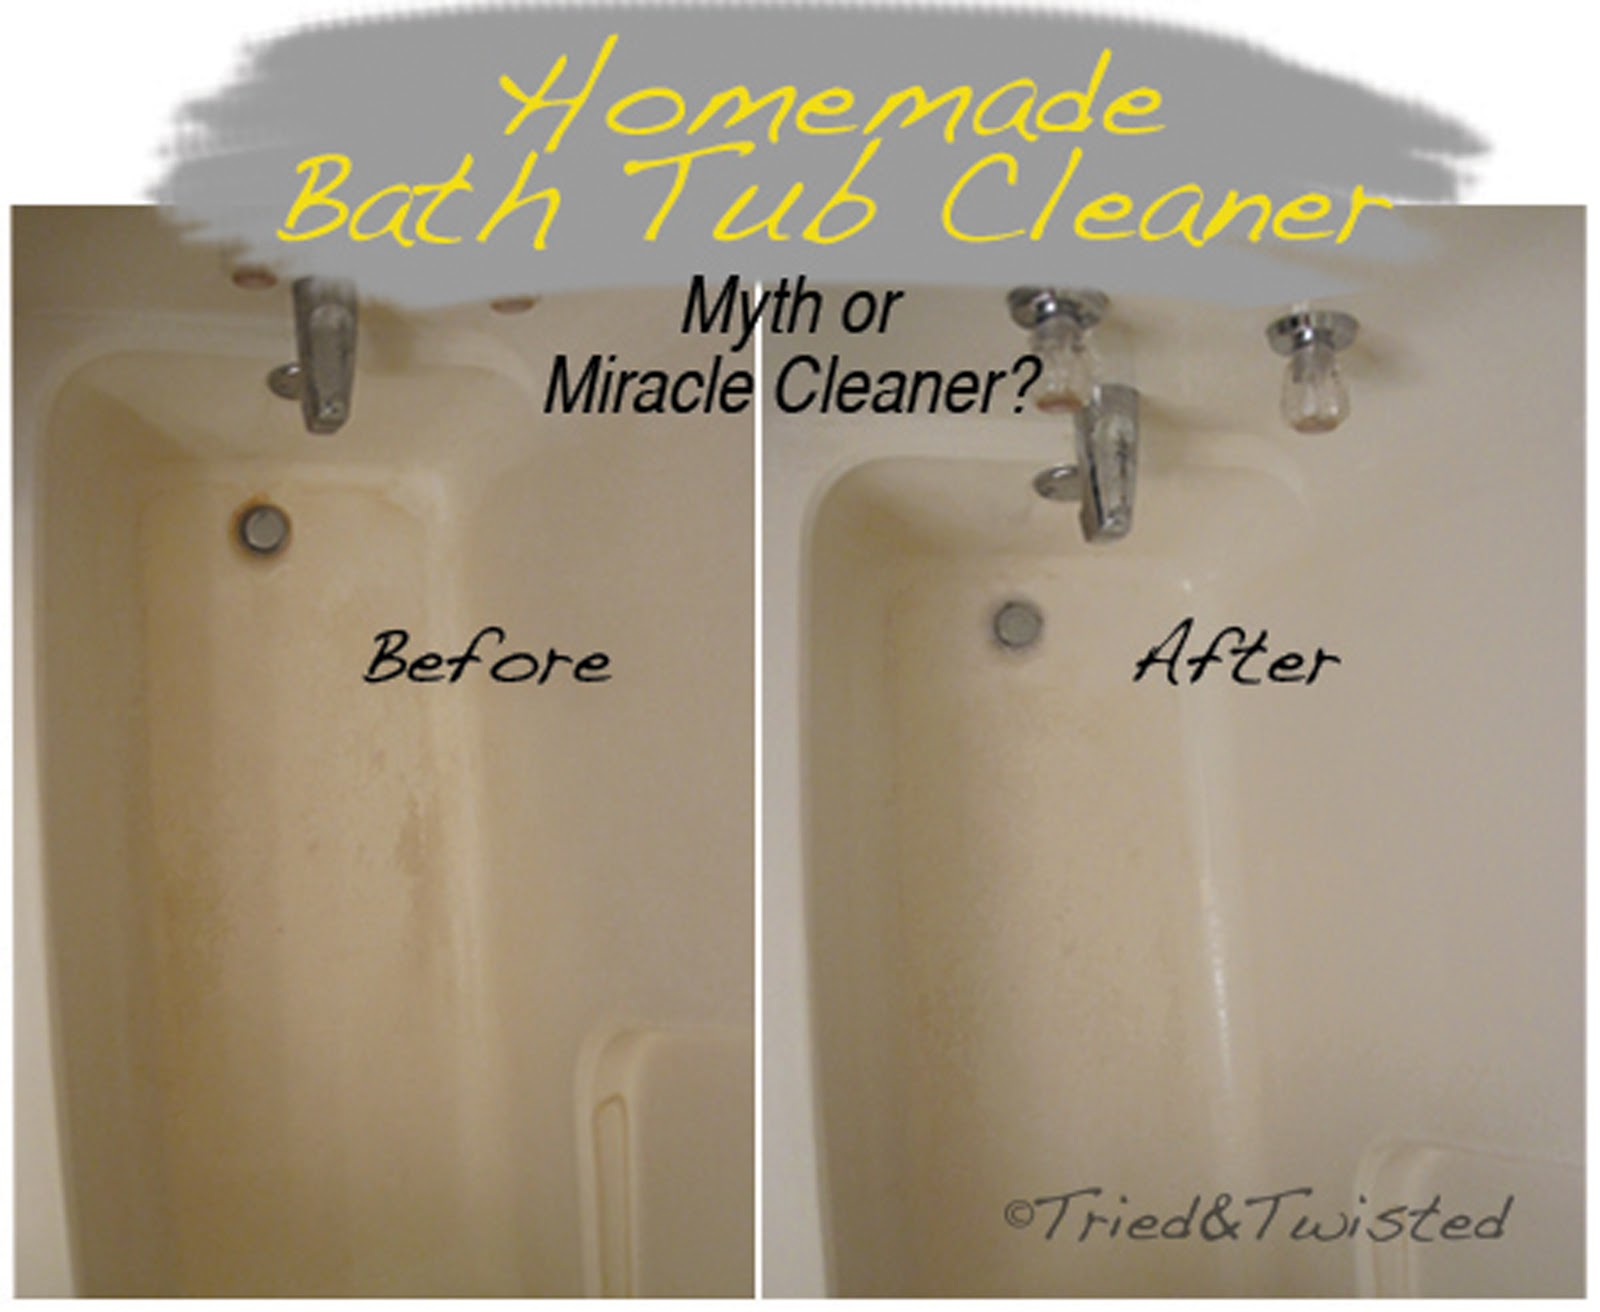 Tried And Twisted Myth Or Miracle Cleaner Series Clean Your Bath